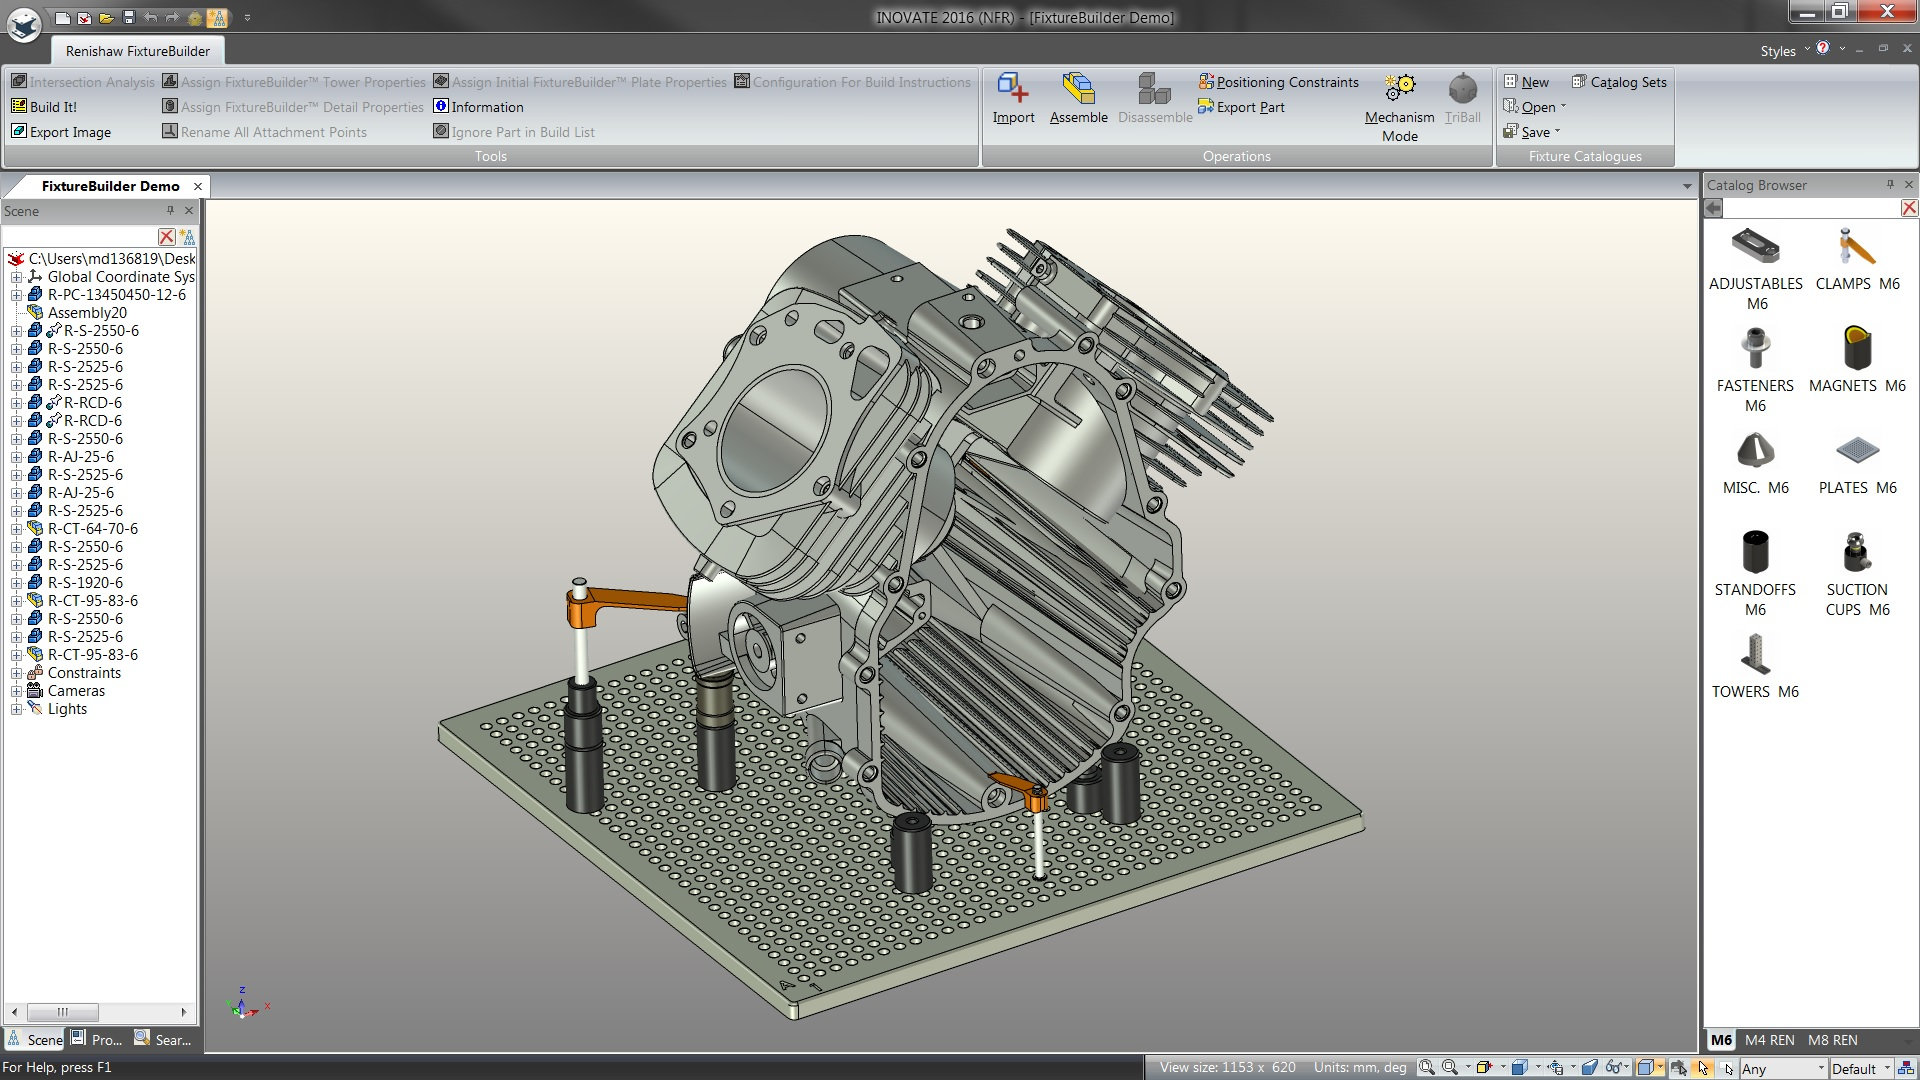 Renishaw Launches Fixturebuilder 3d Modelling Software To